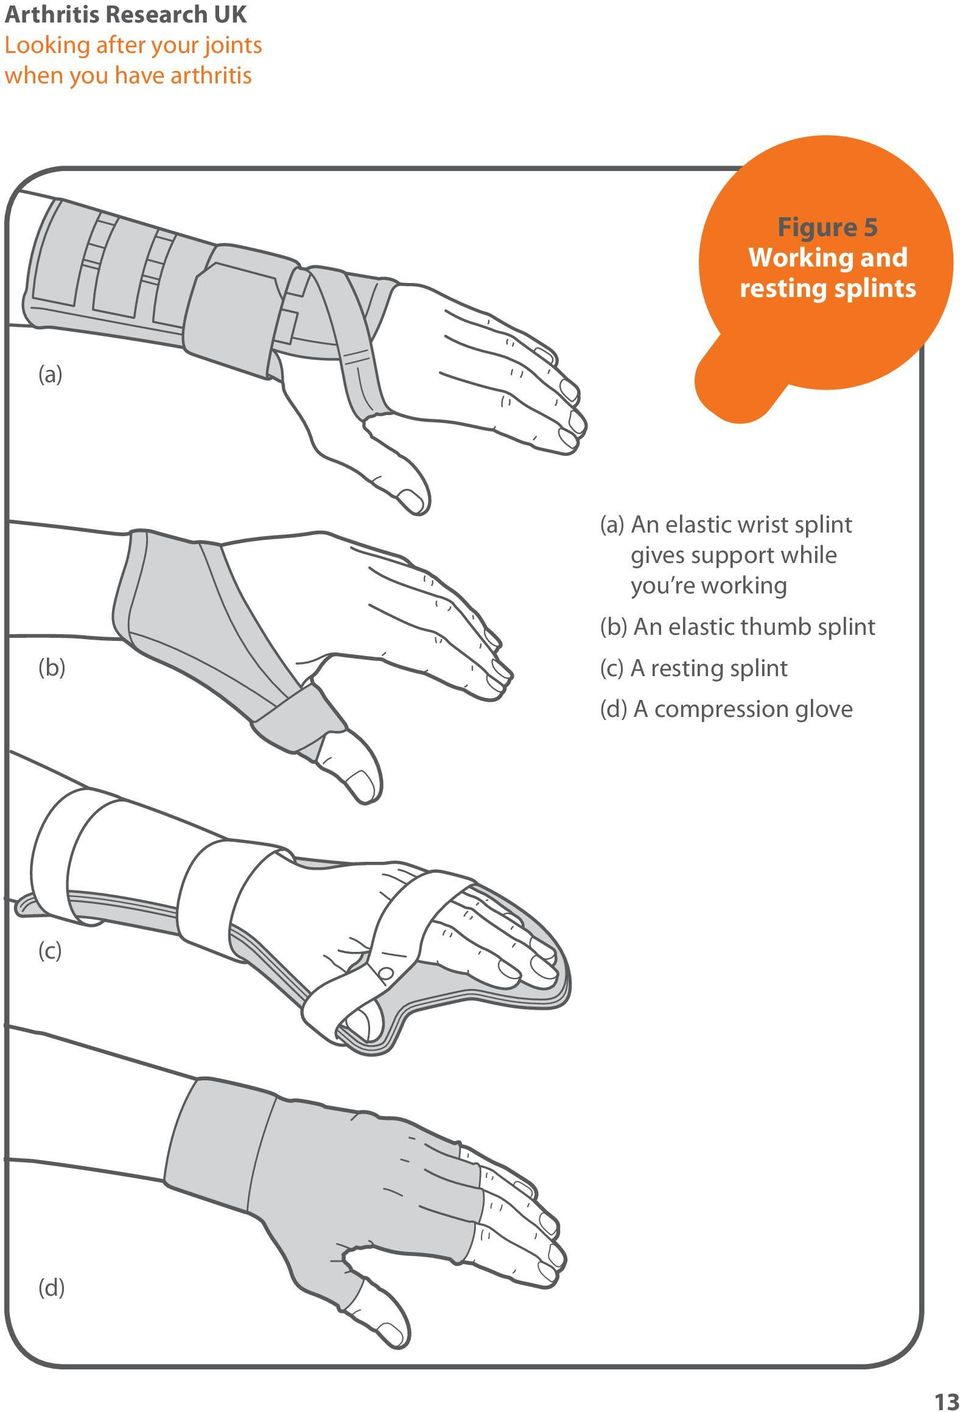 elastic wrist splint gives support while you re working (b) An